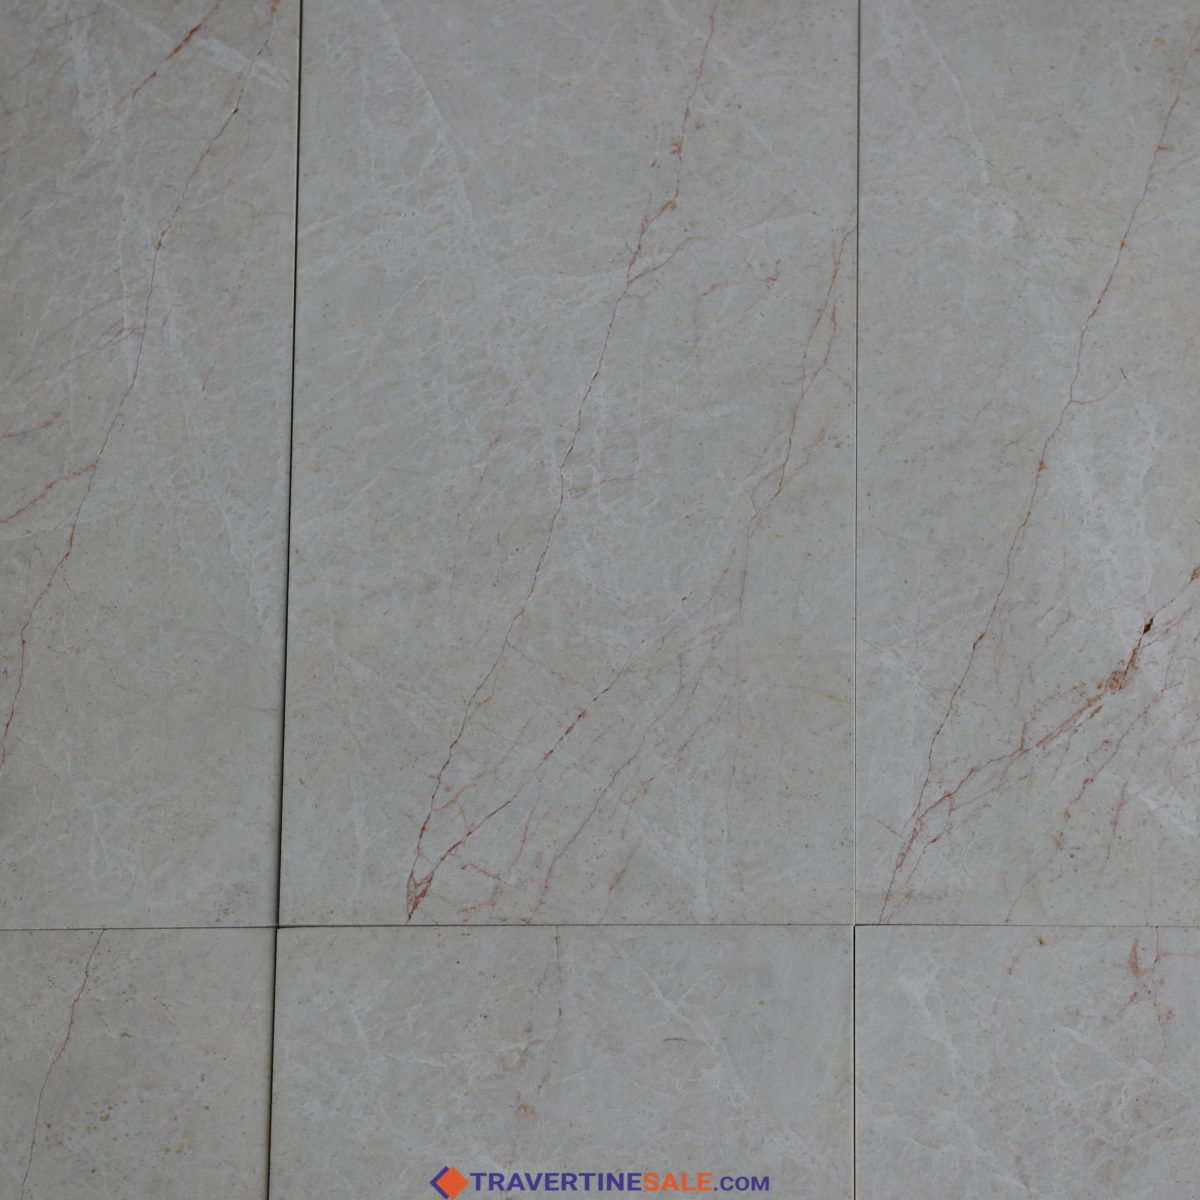 polished vanilla marble tiles with beige color with red veins close up